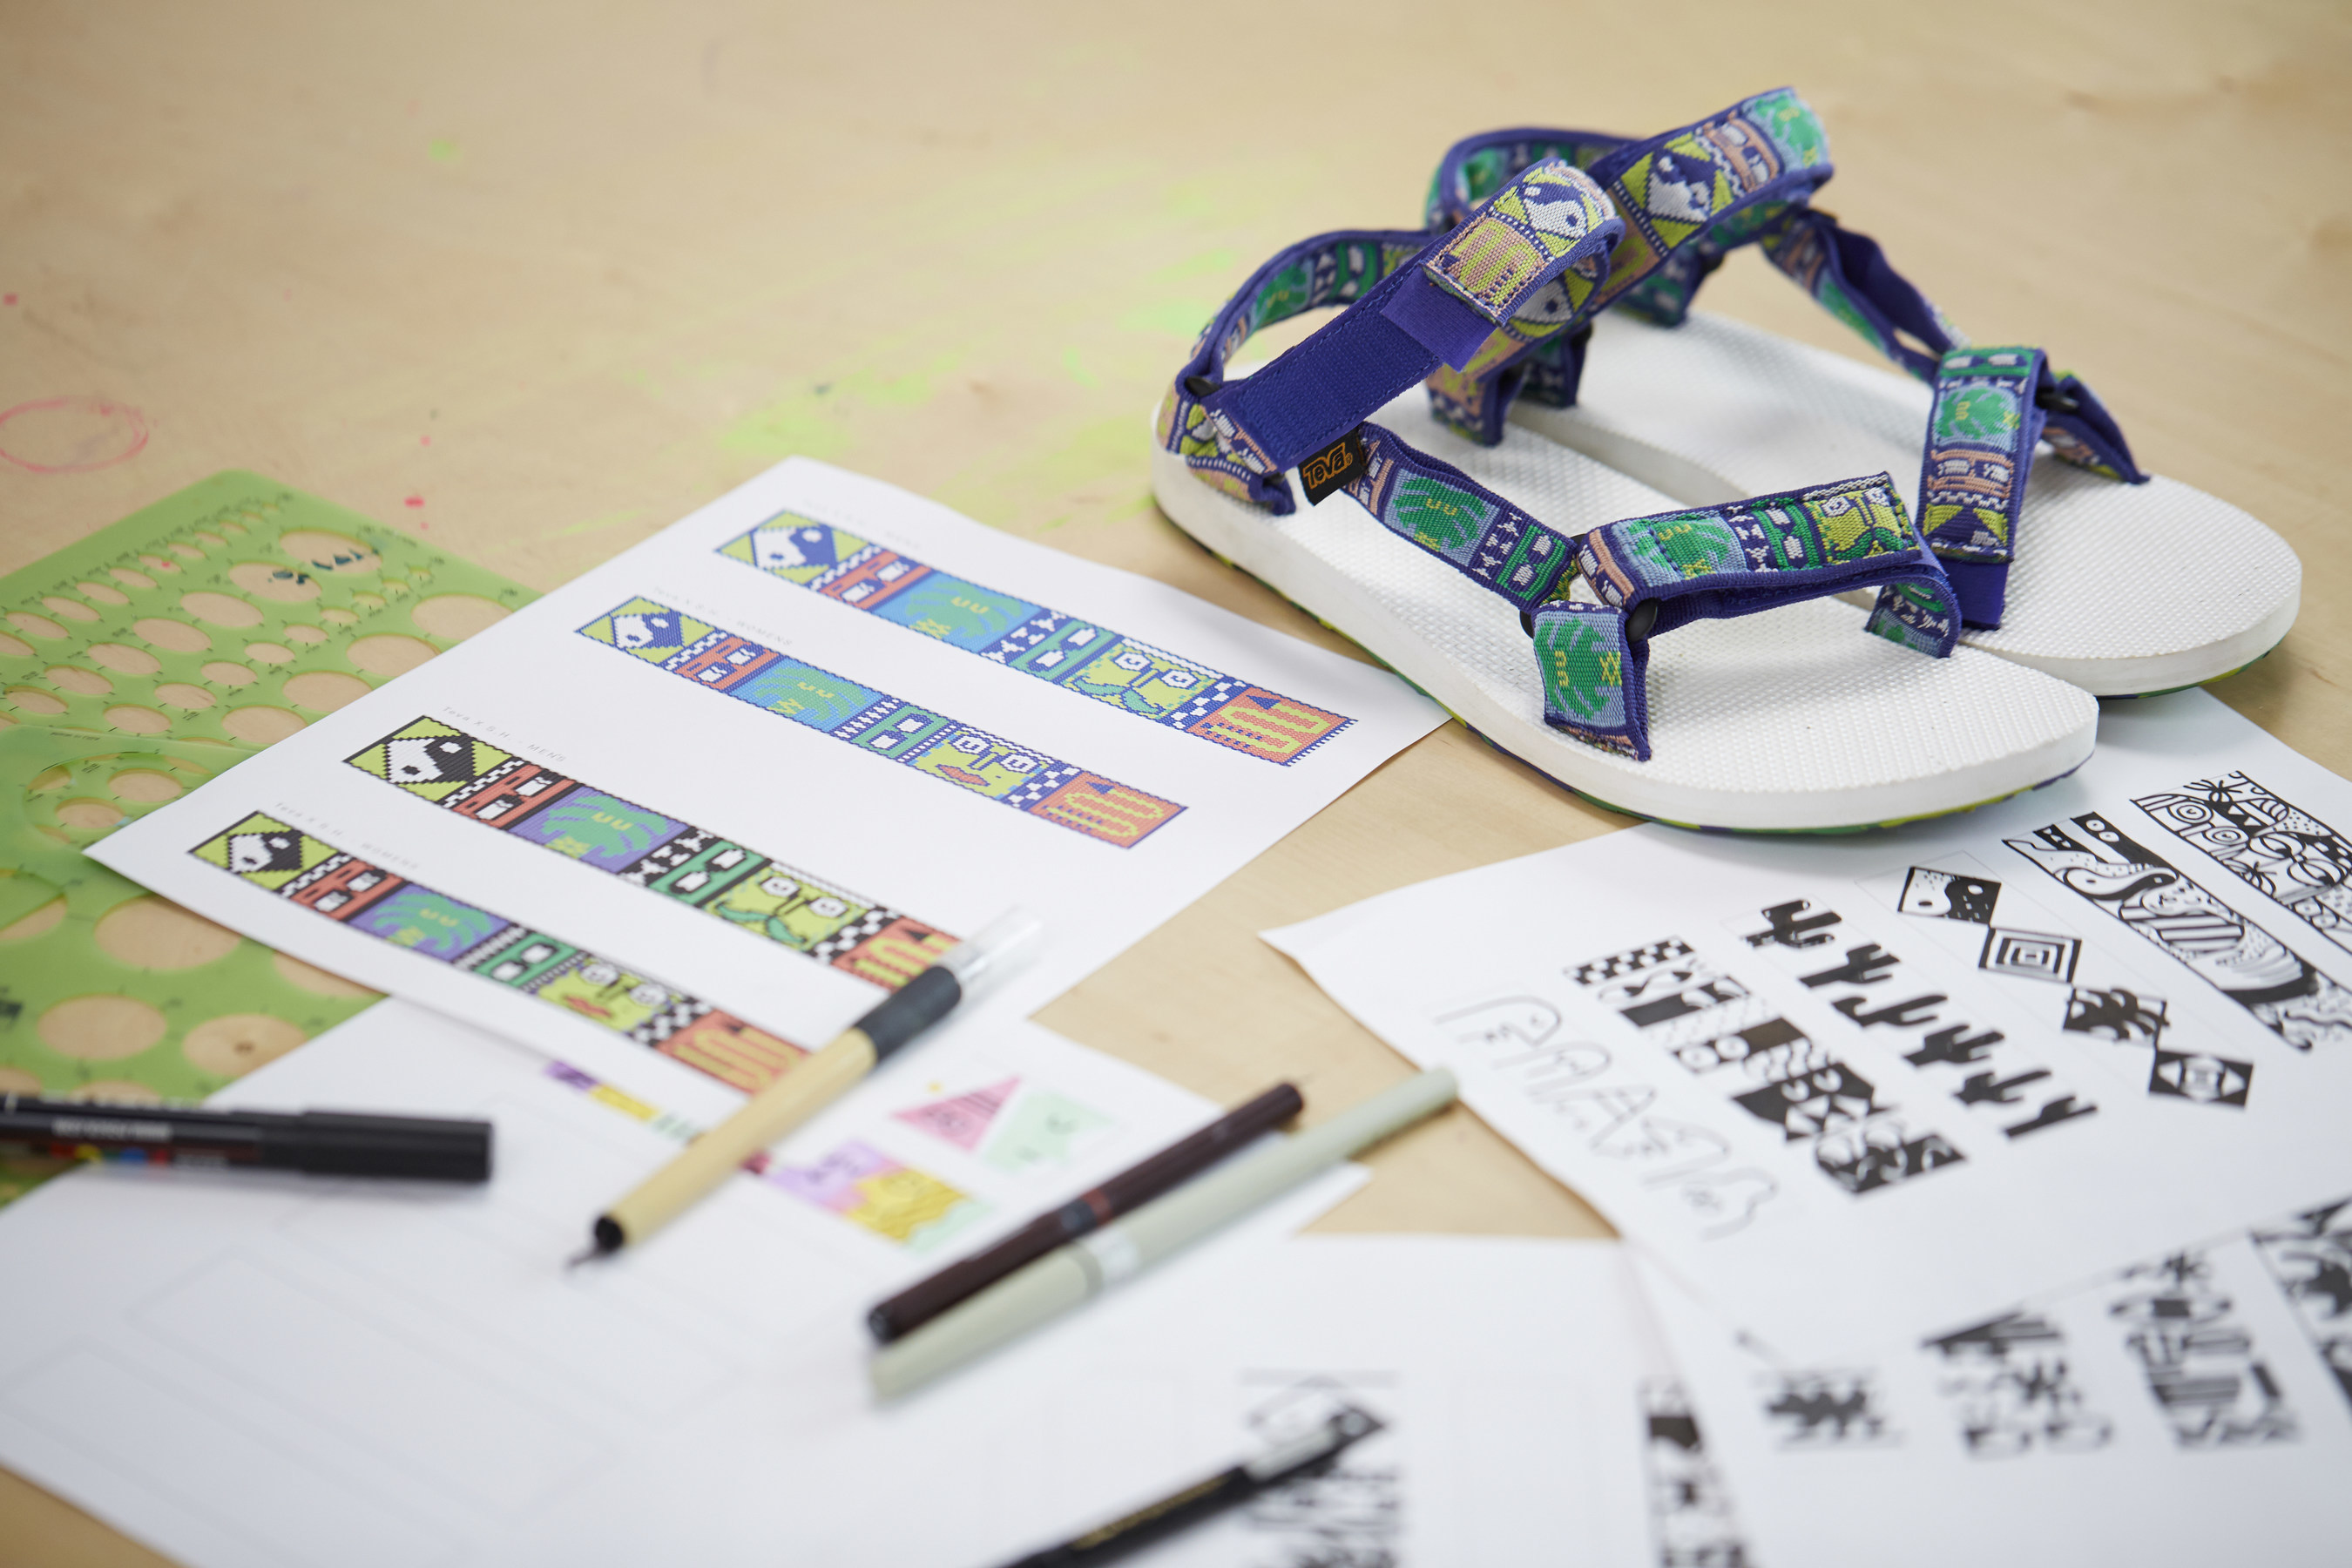 Teva introduces a new Artist Series collection featuring artwork by National Forest, turning the iconic sandal silhouette into a canvas for California designers.